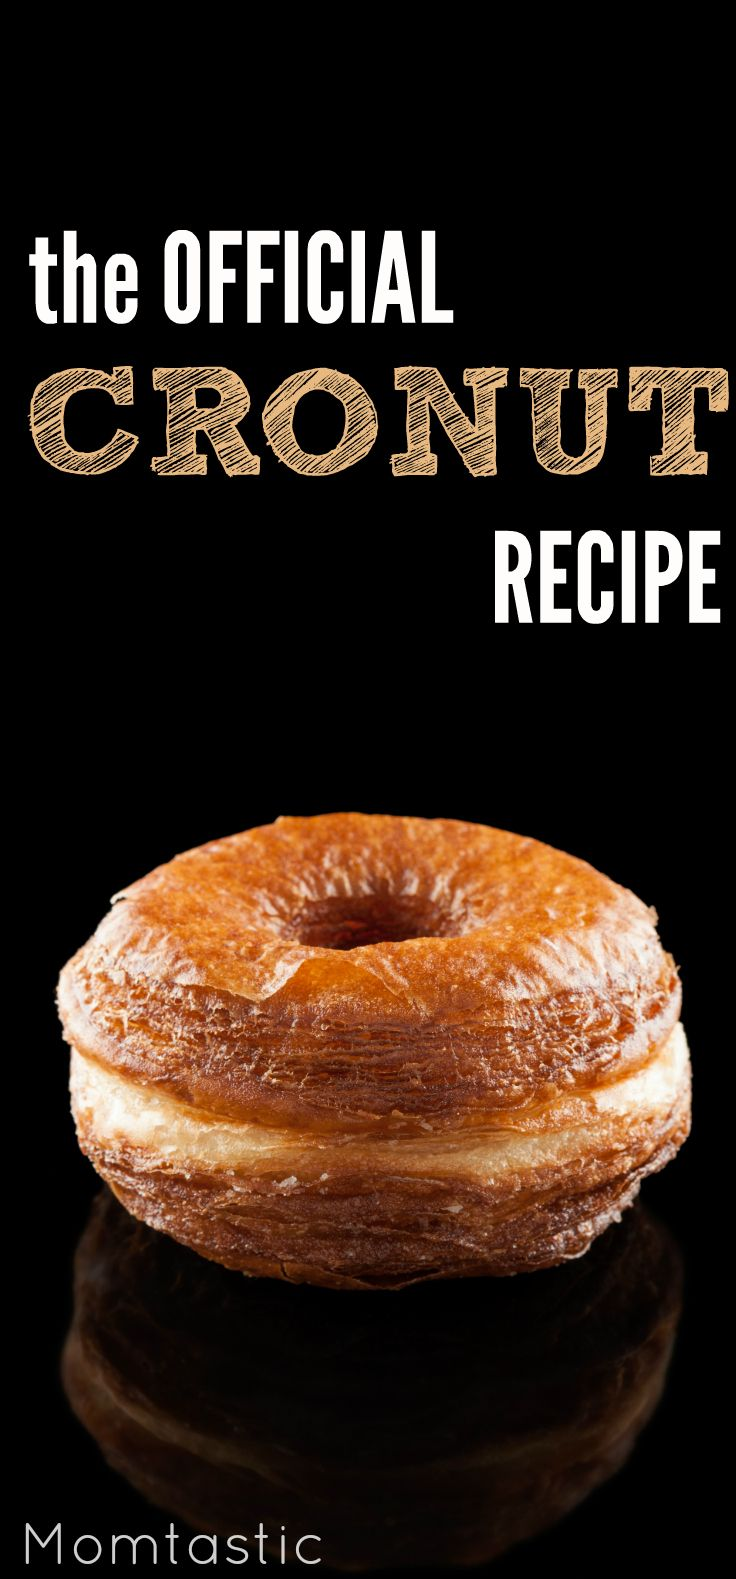 Shhh- the official #cronut recipe from the maker himself!